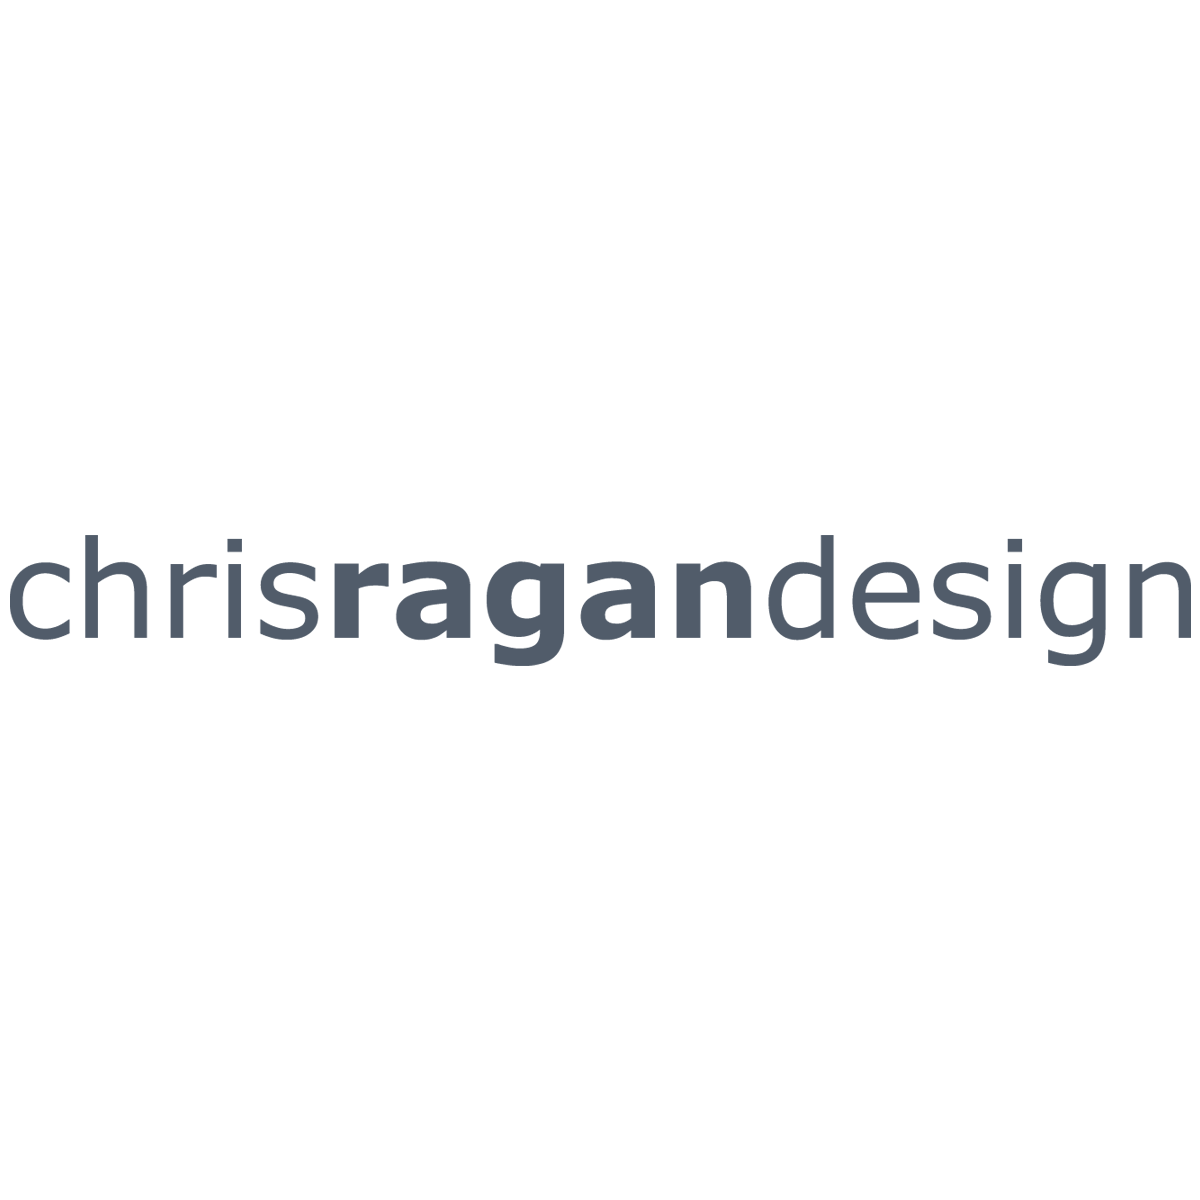 chrisragandesign